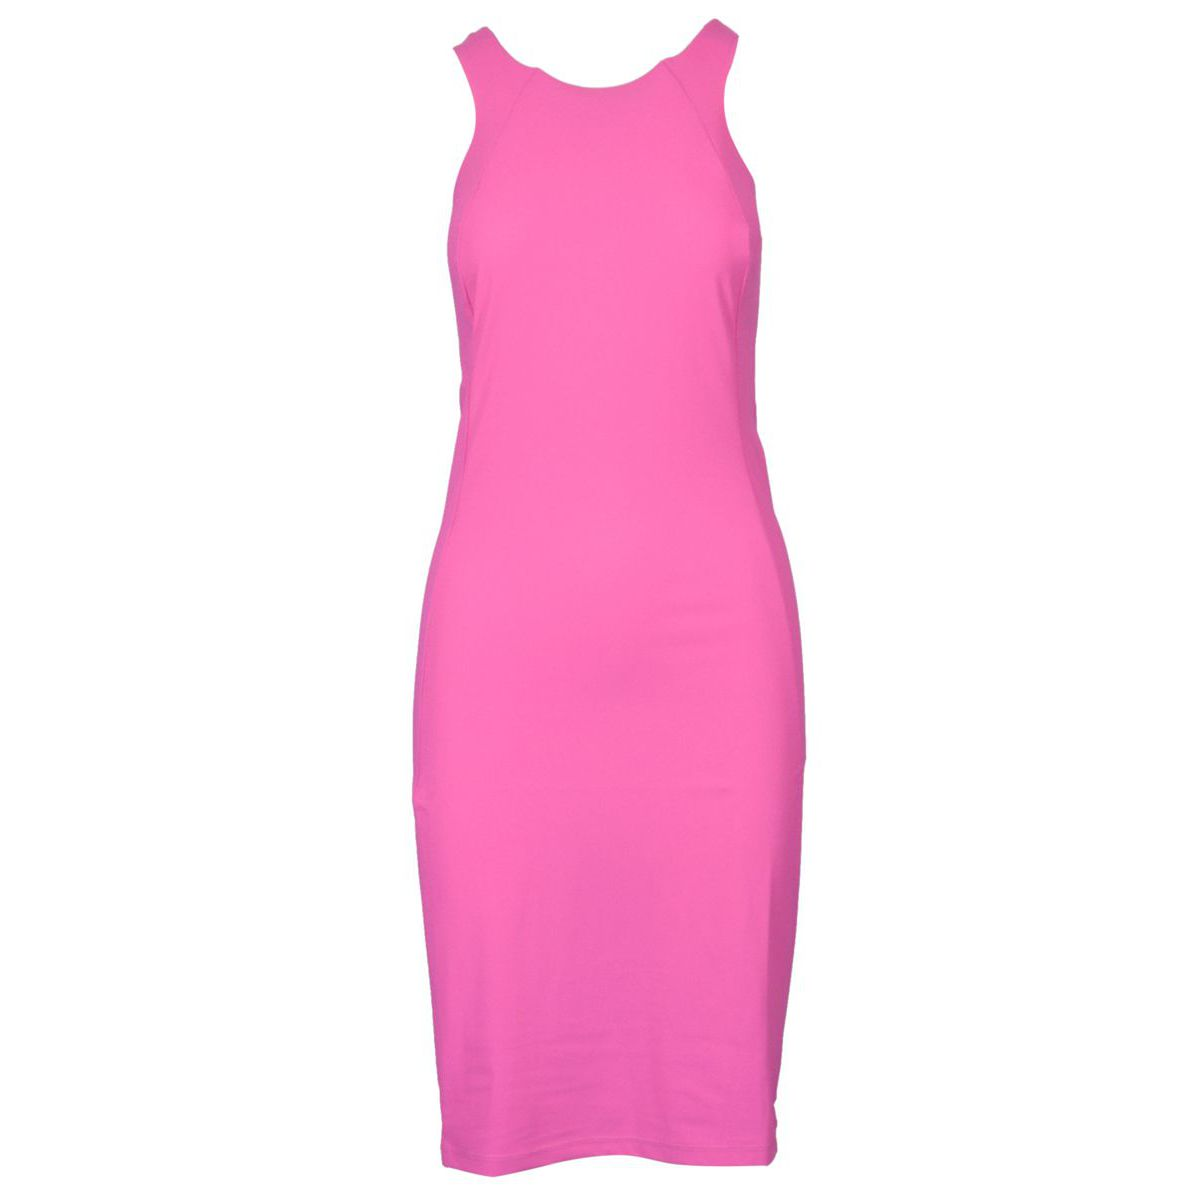 Sheath dress in technical fabric with round neckline Orchid Patrizia Pepe